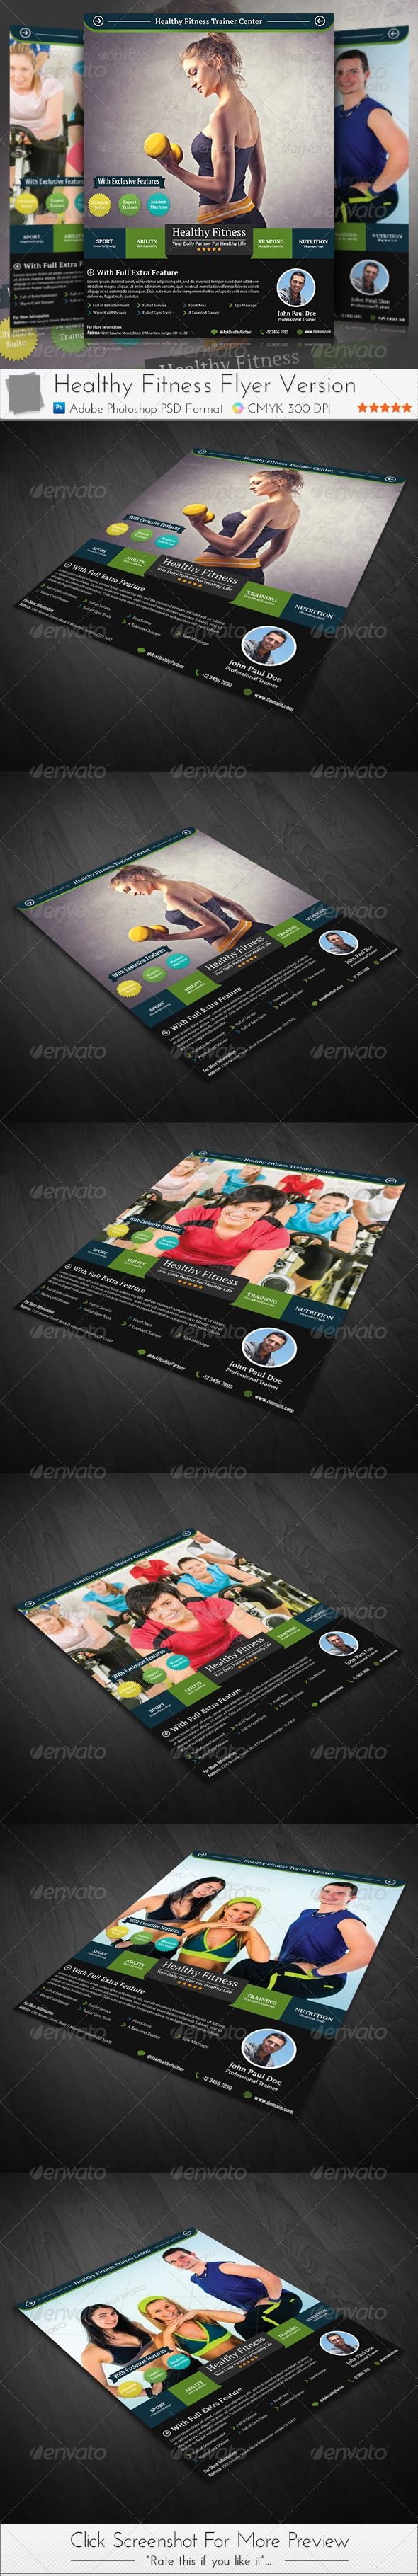 186 best Promotions images on Pinterest | Exhibition booth design ...